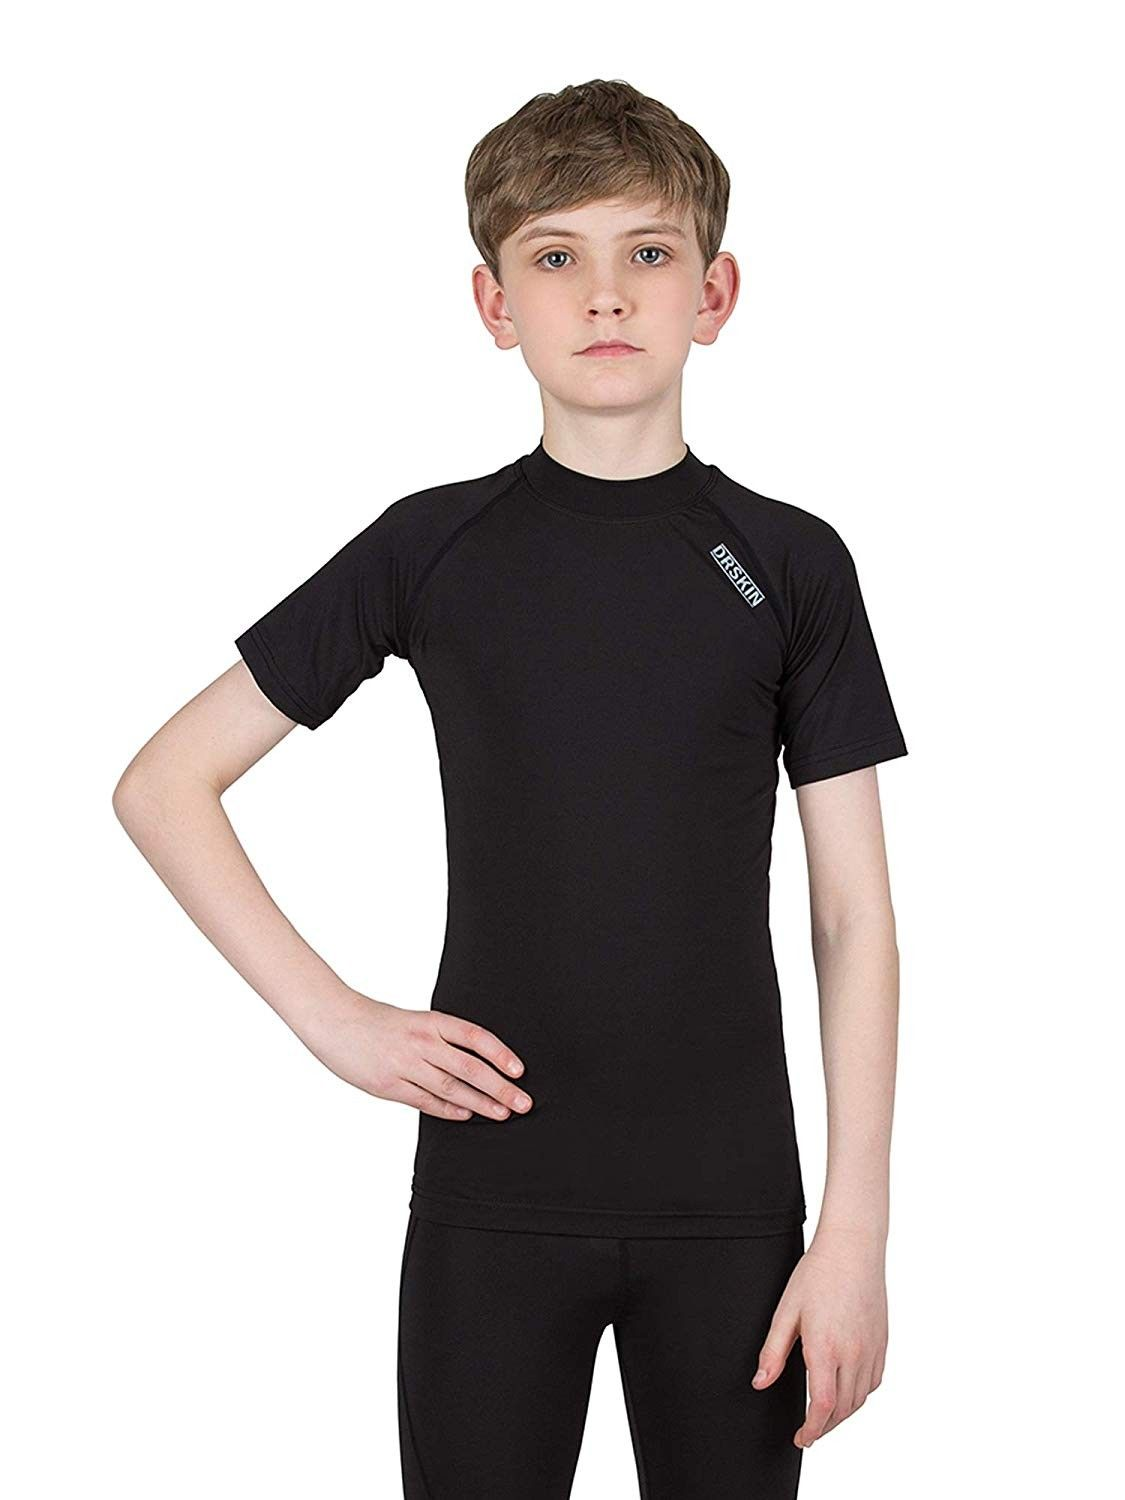 Kids' Unisex-(Boys & Girls) Long Sleeve Athletic Base Layer Compression Underwear Shirt or Tights -...